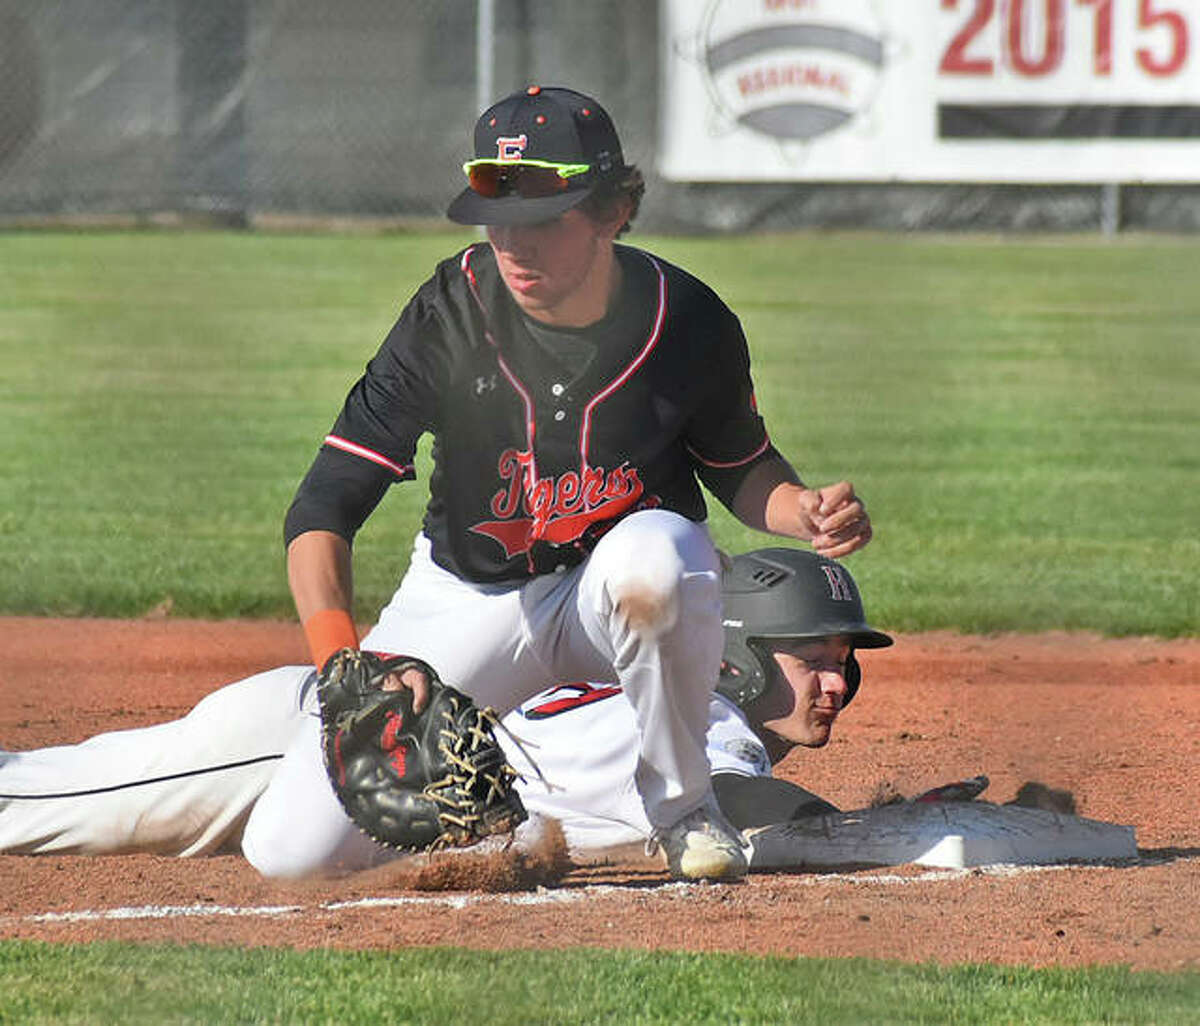 Edwardsville first baseman Riley Iffrig takes a pickoff throw while a Highland runner dives safely back to the bag during the first inning Tuesday at Glik Park in Highland.